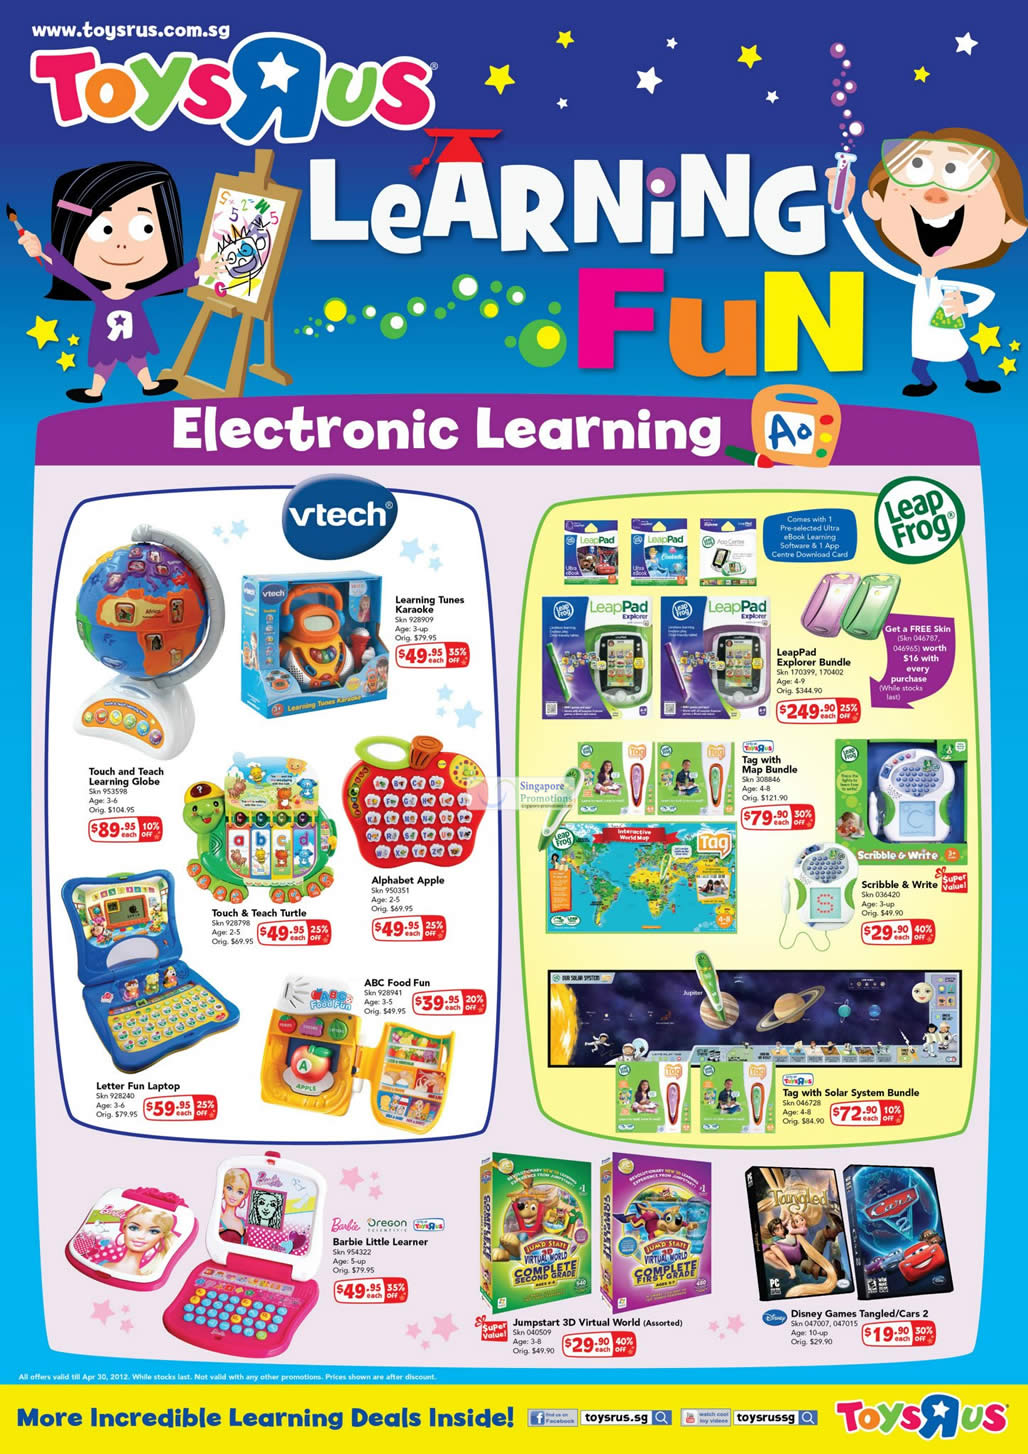 """Toys """"R"""" Us Babies """"R"""" Us Learning Fun Offers & Promotions 5 – 30 Apr 2012"""